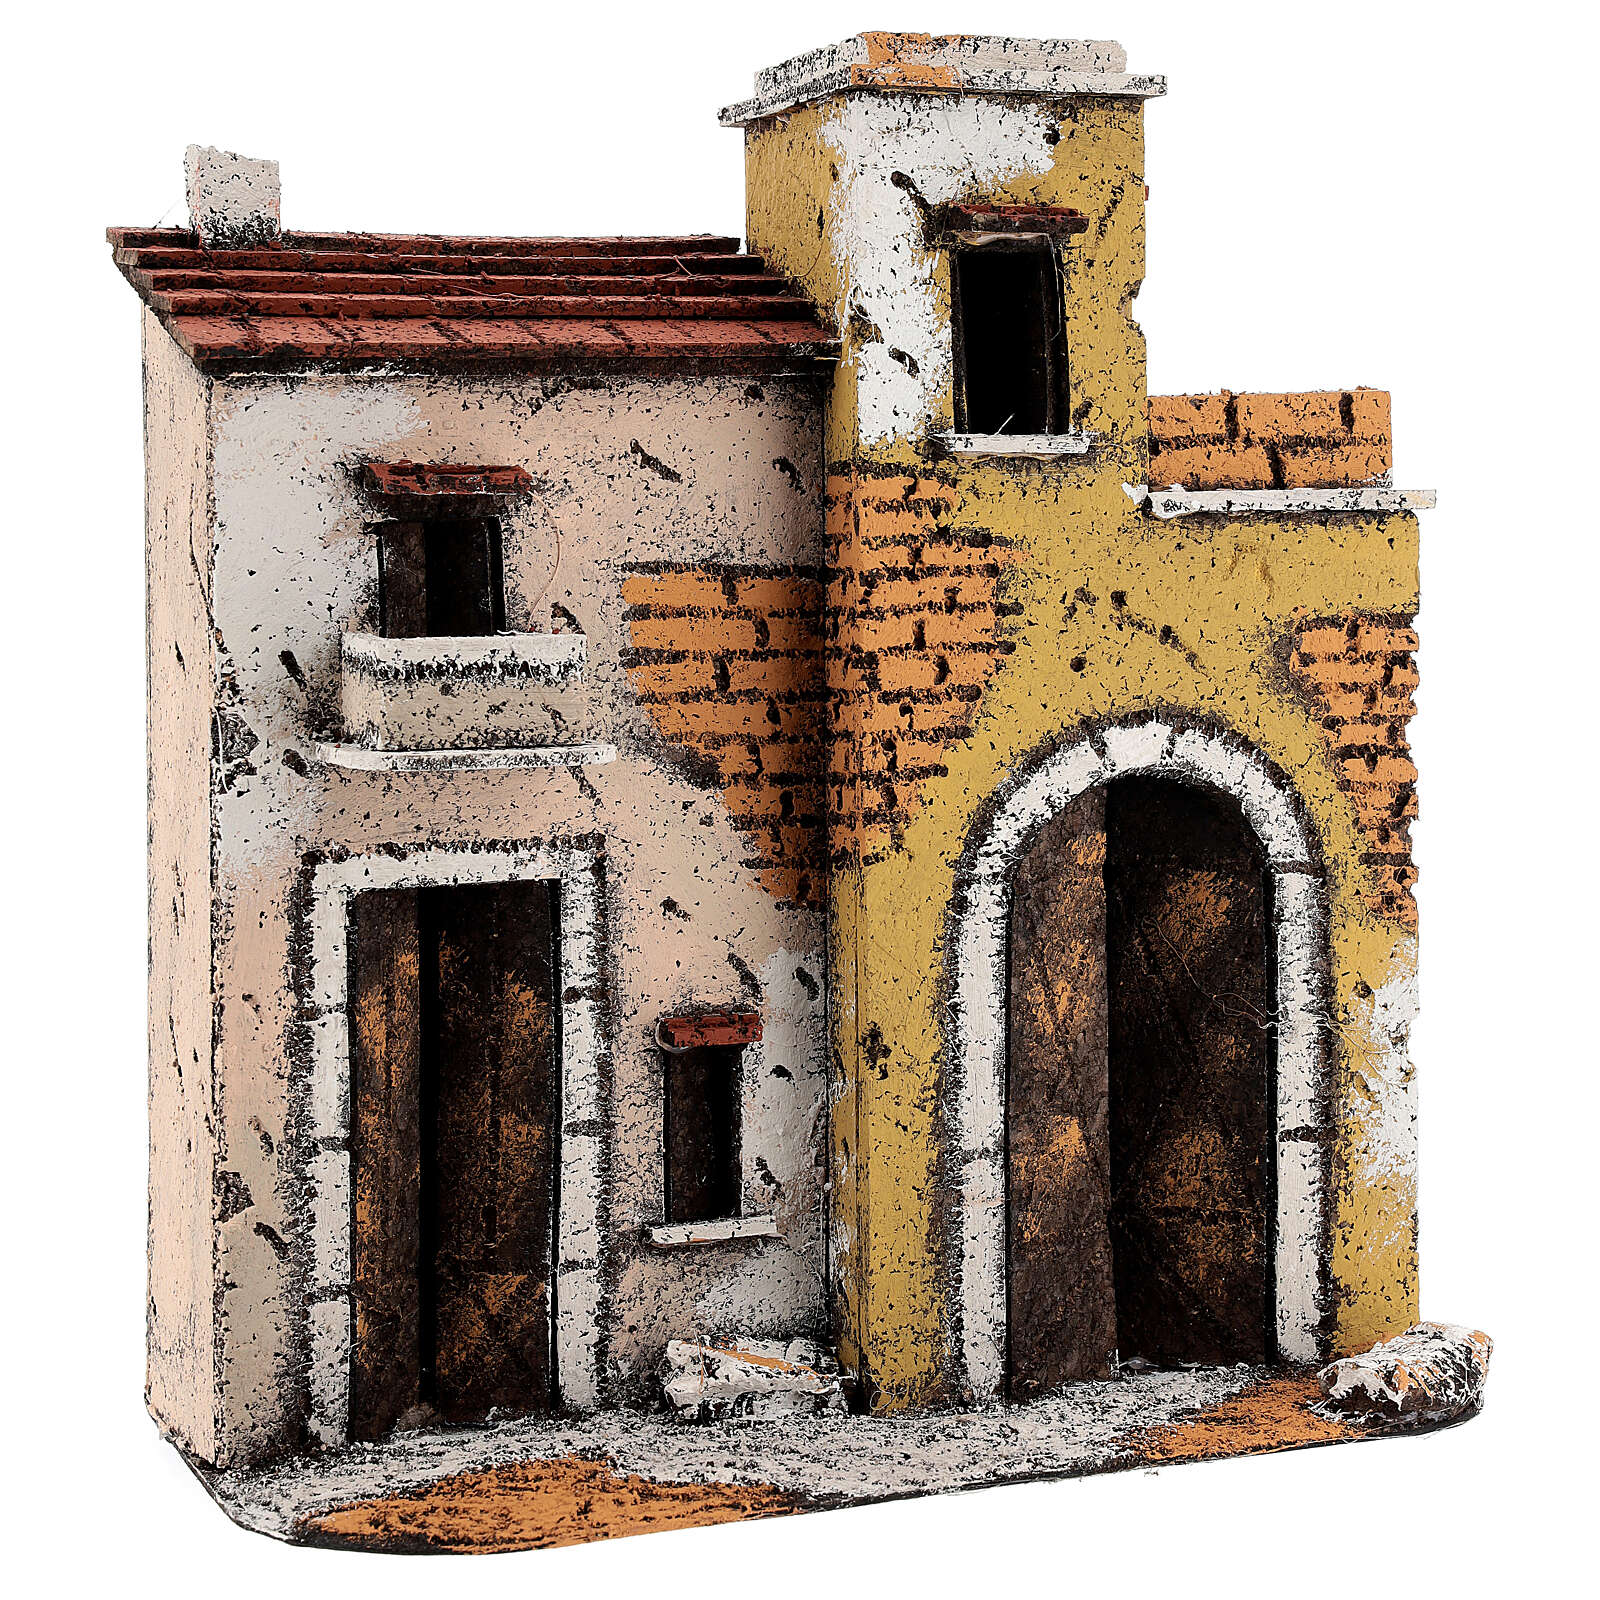 Neapolitan Nativity Scene setting houses on a road with balconies 25x25x10 cm for 10 cm figurines 4